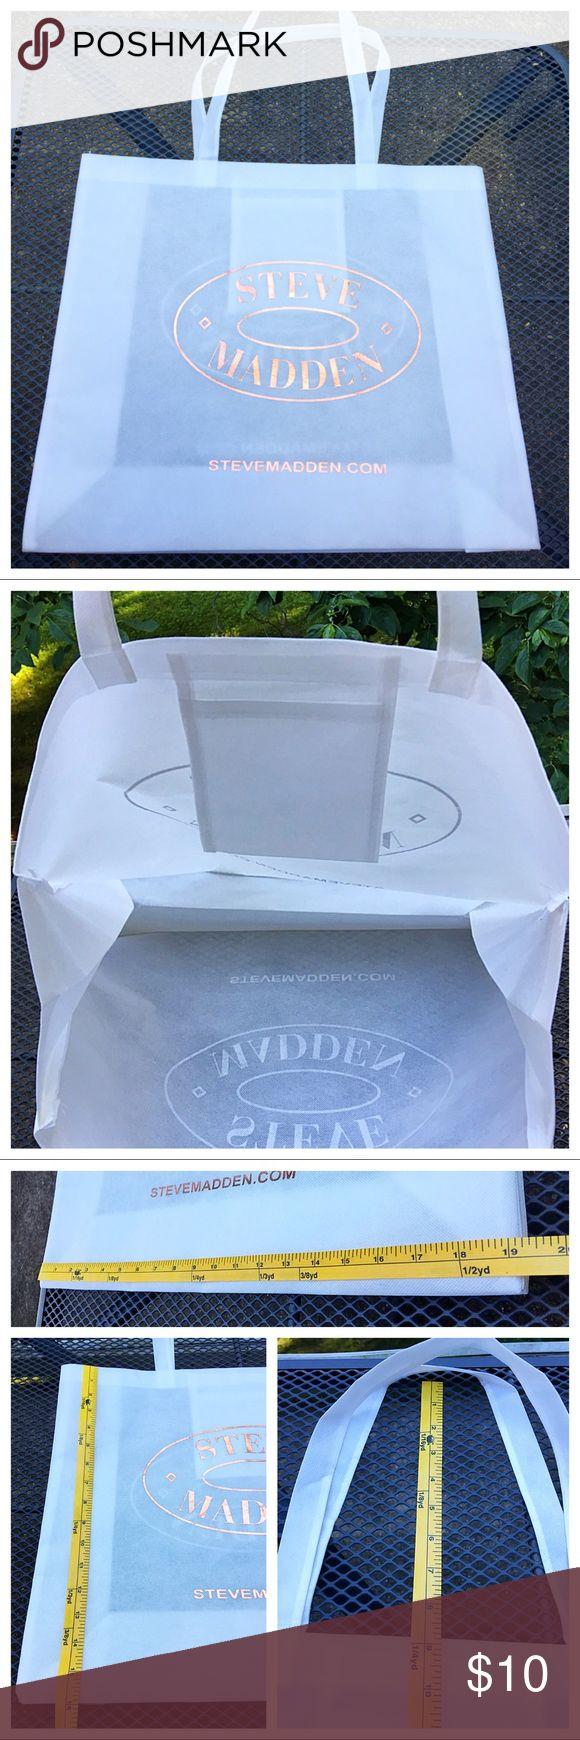 Steve Madden Large Cloth Shopping Bag White cloth shopping bag by Steve Madden! Used only once to bring home toddies from the store! White with gold lettering. 1 small interior slip pocket. Steve Madden Bags Totes